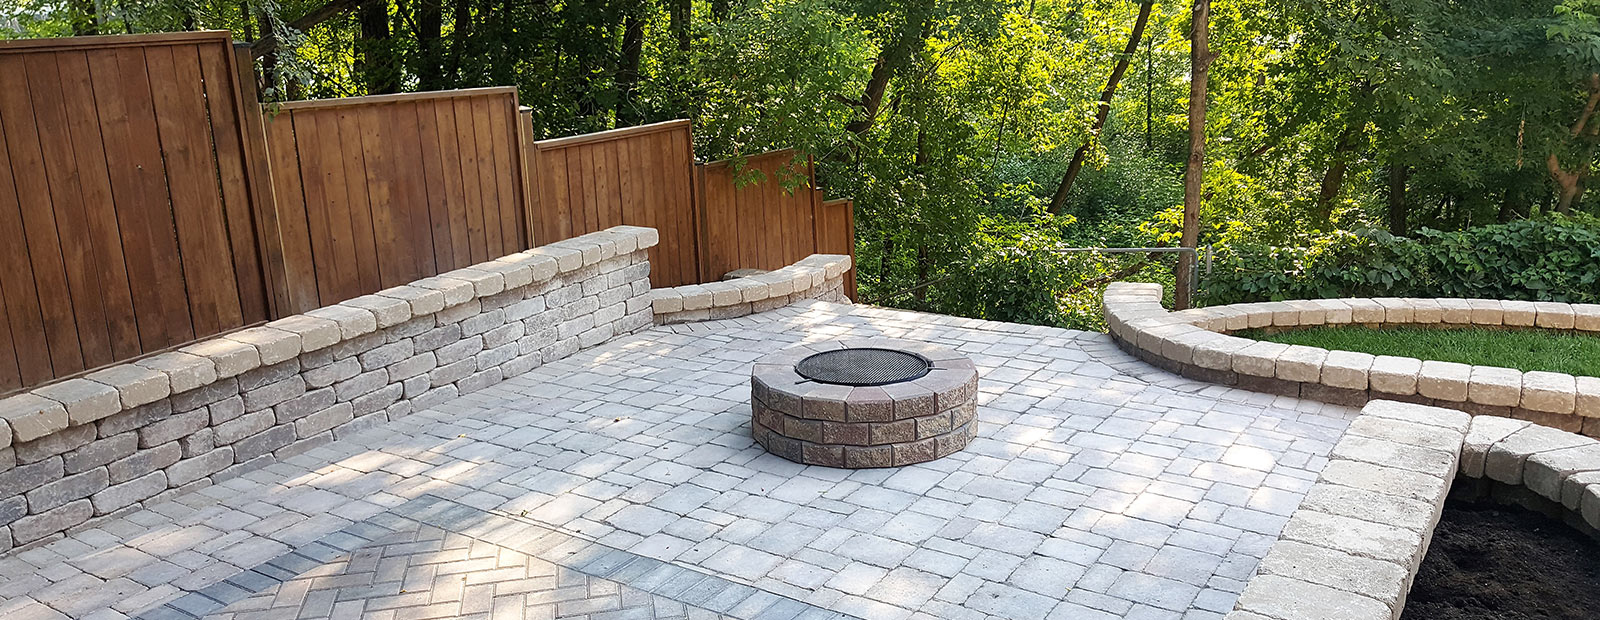 Fireplace - Winnipeg landscaping and hardscaping